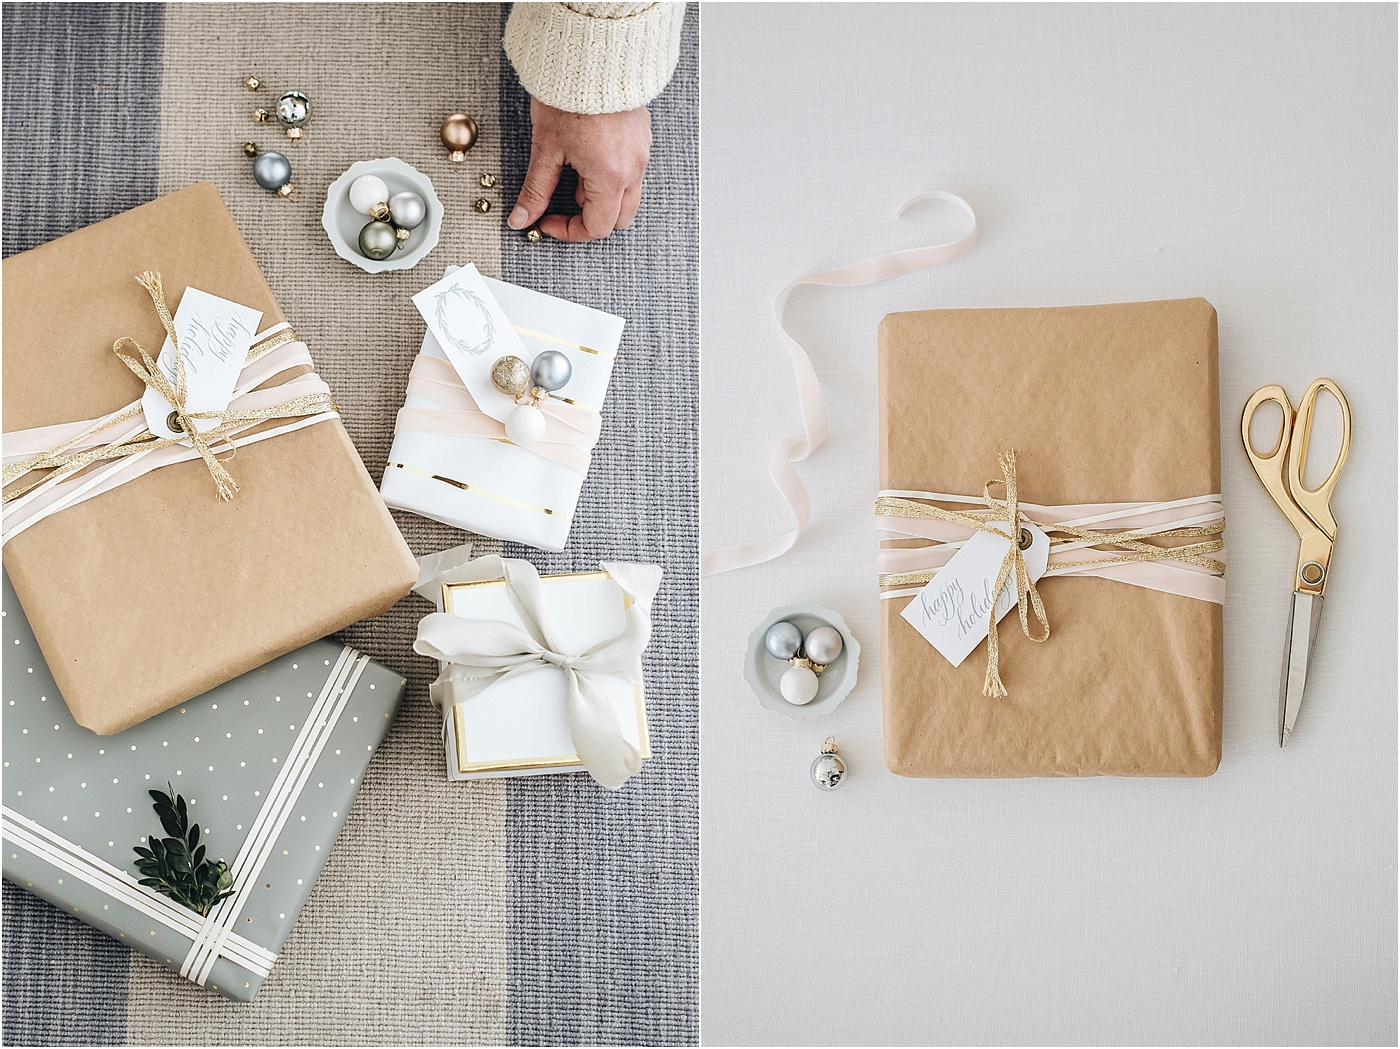 kraft paper wrapping, holiday, gift wrapping, gift guide, bride and groom, Sugar Paper LA, Target